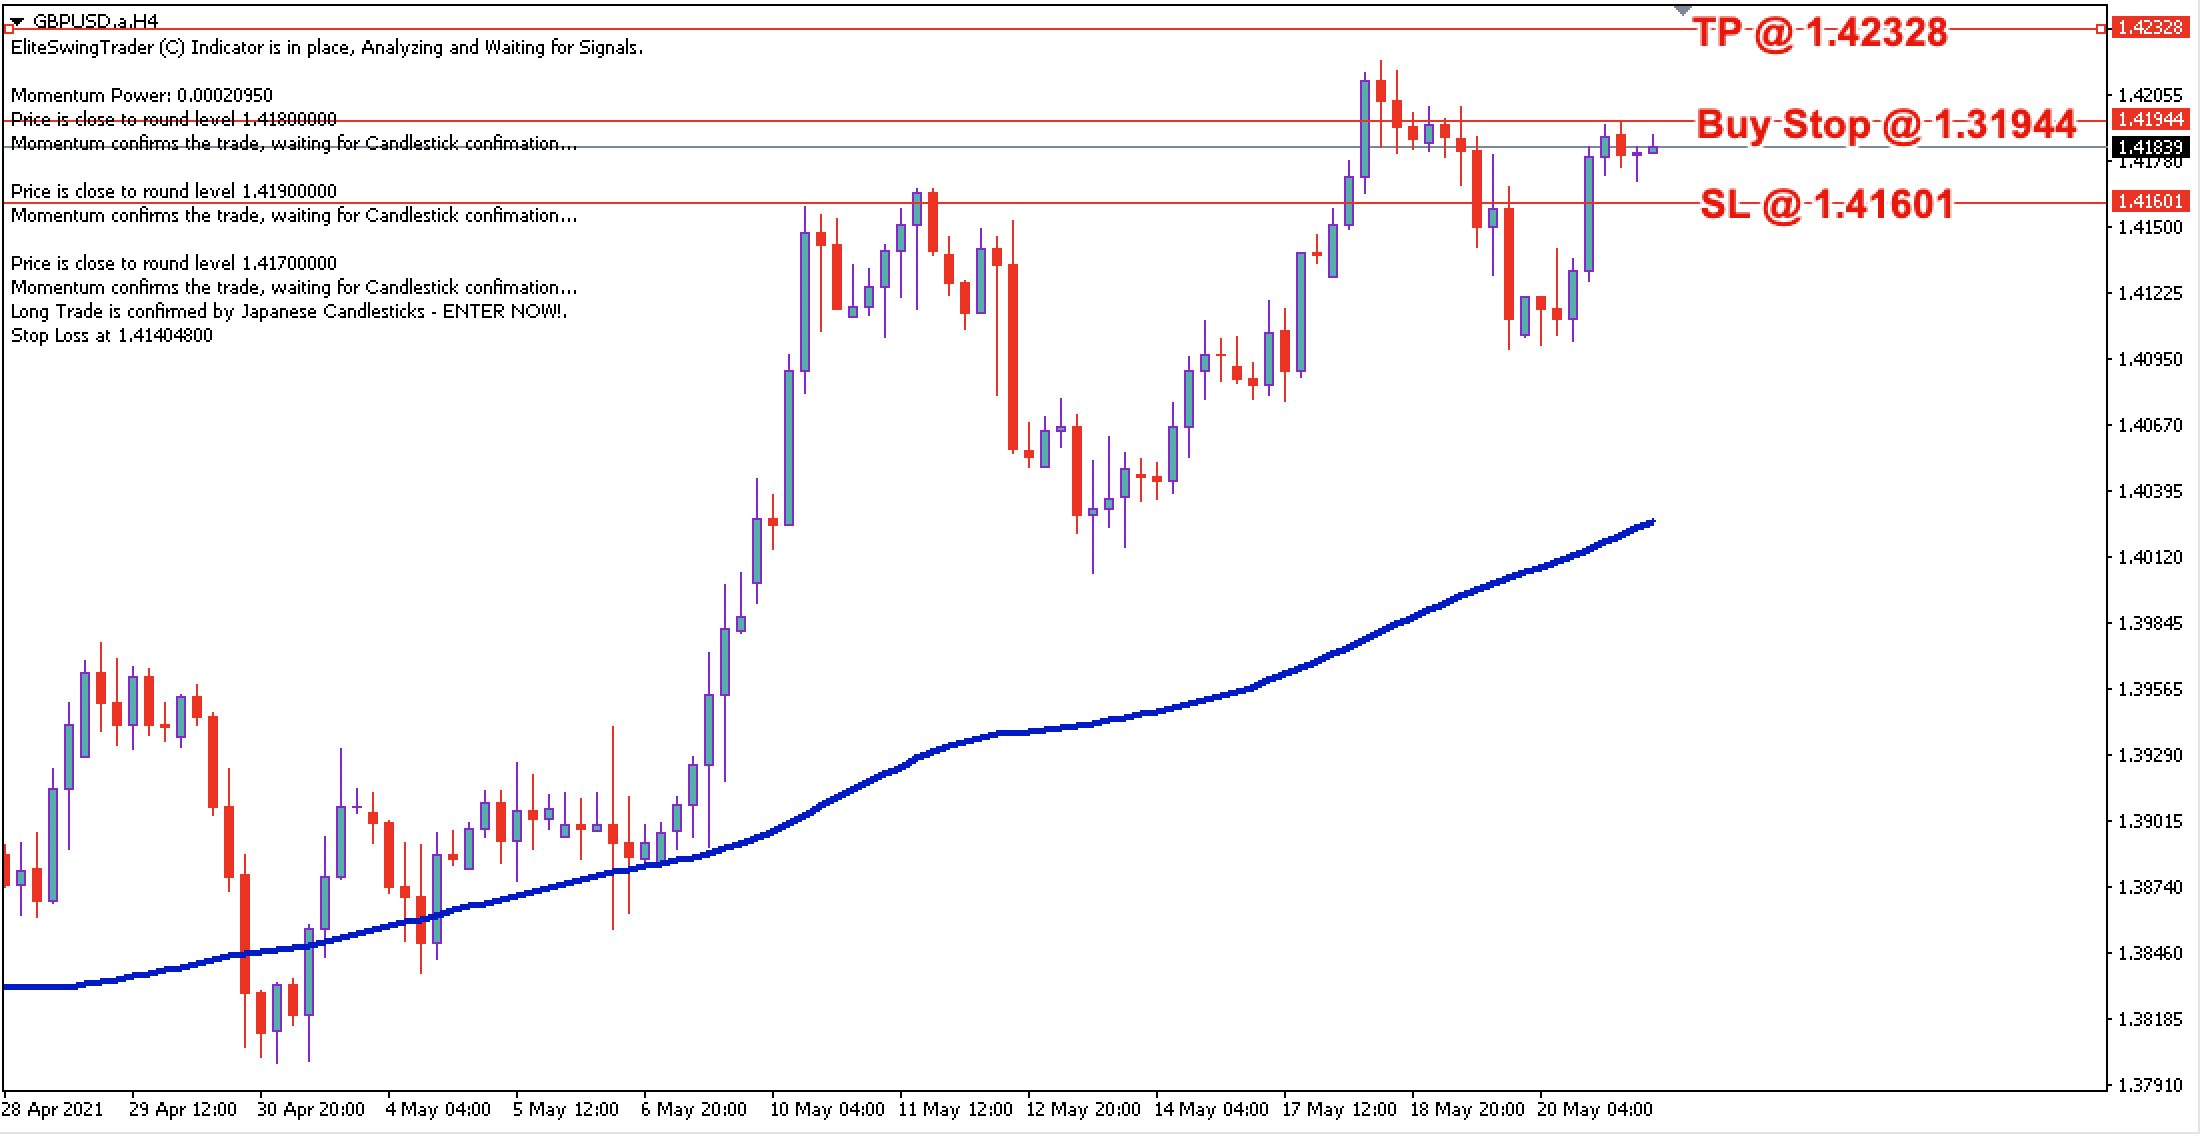 GBP/USD Daily Price Forecast – 21st May 2021